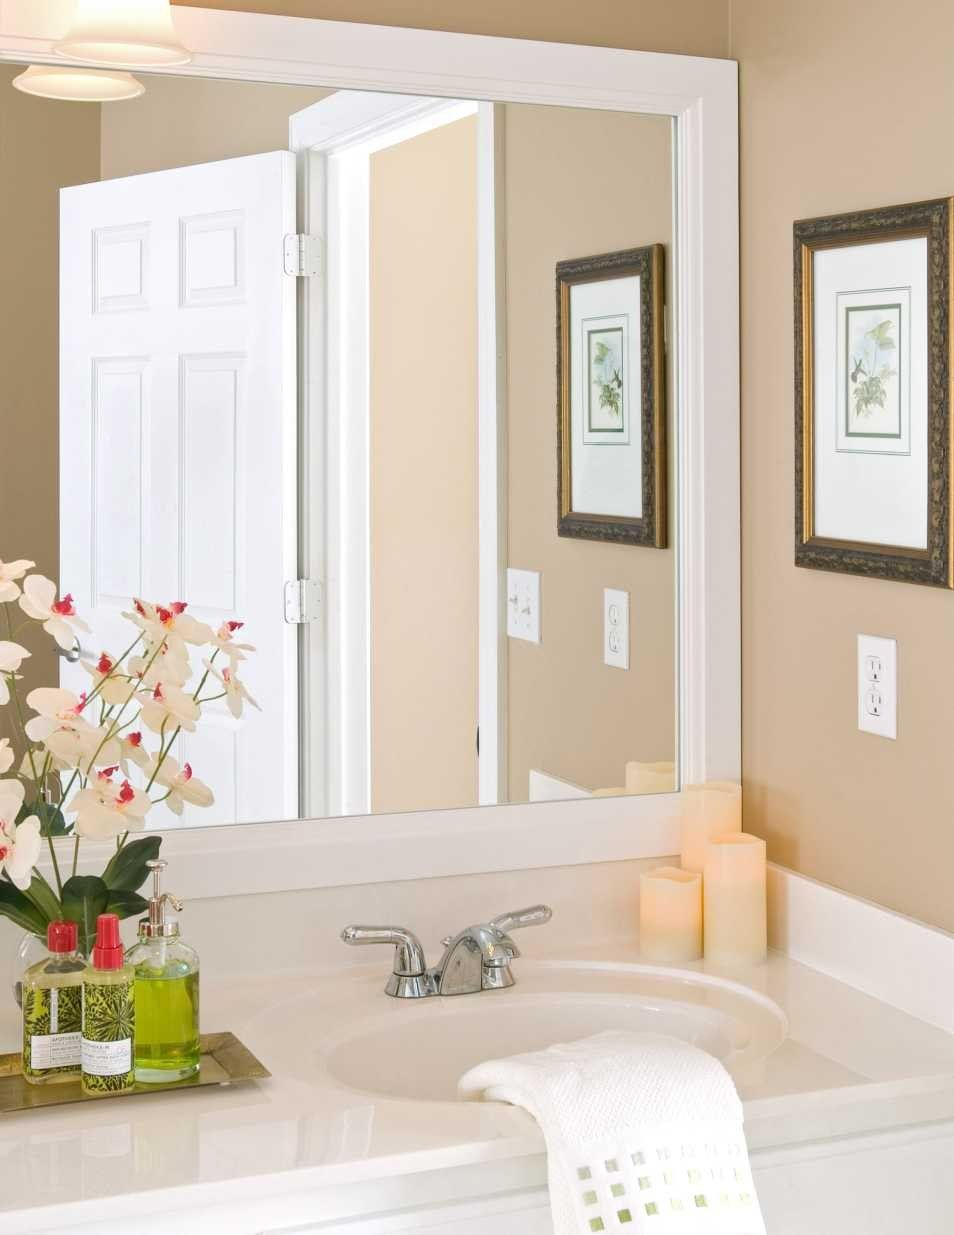 White Framed Bathroom Mirrors | Mirrors | Pinterest | Frame bathroom ...